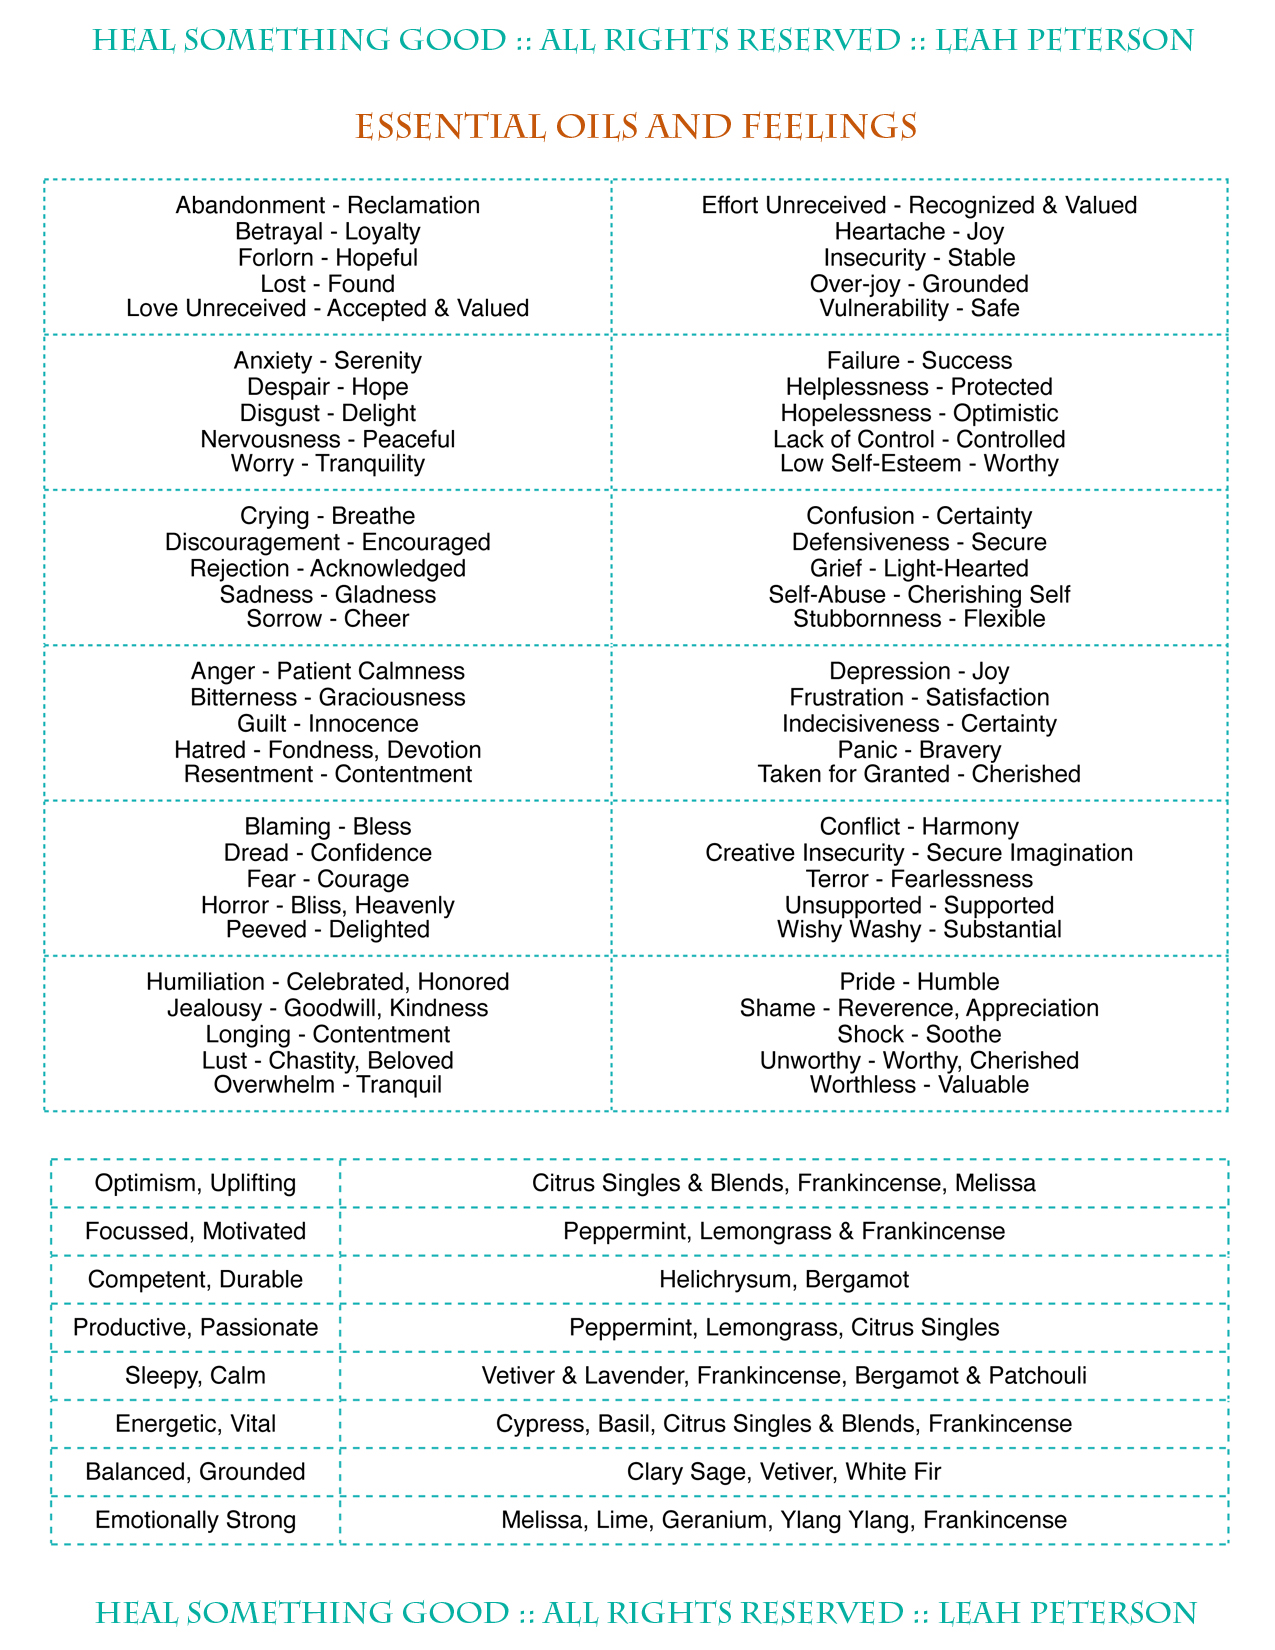 Chart Essential Oils With Feelings Heal Something Good